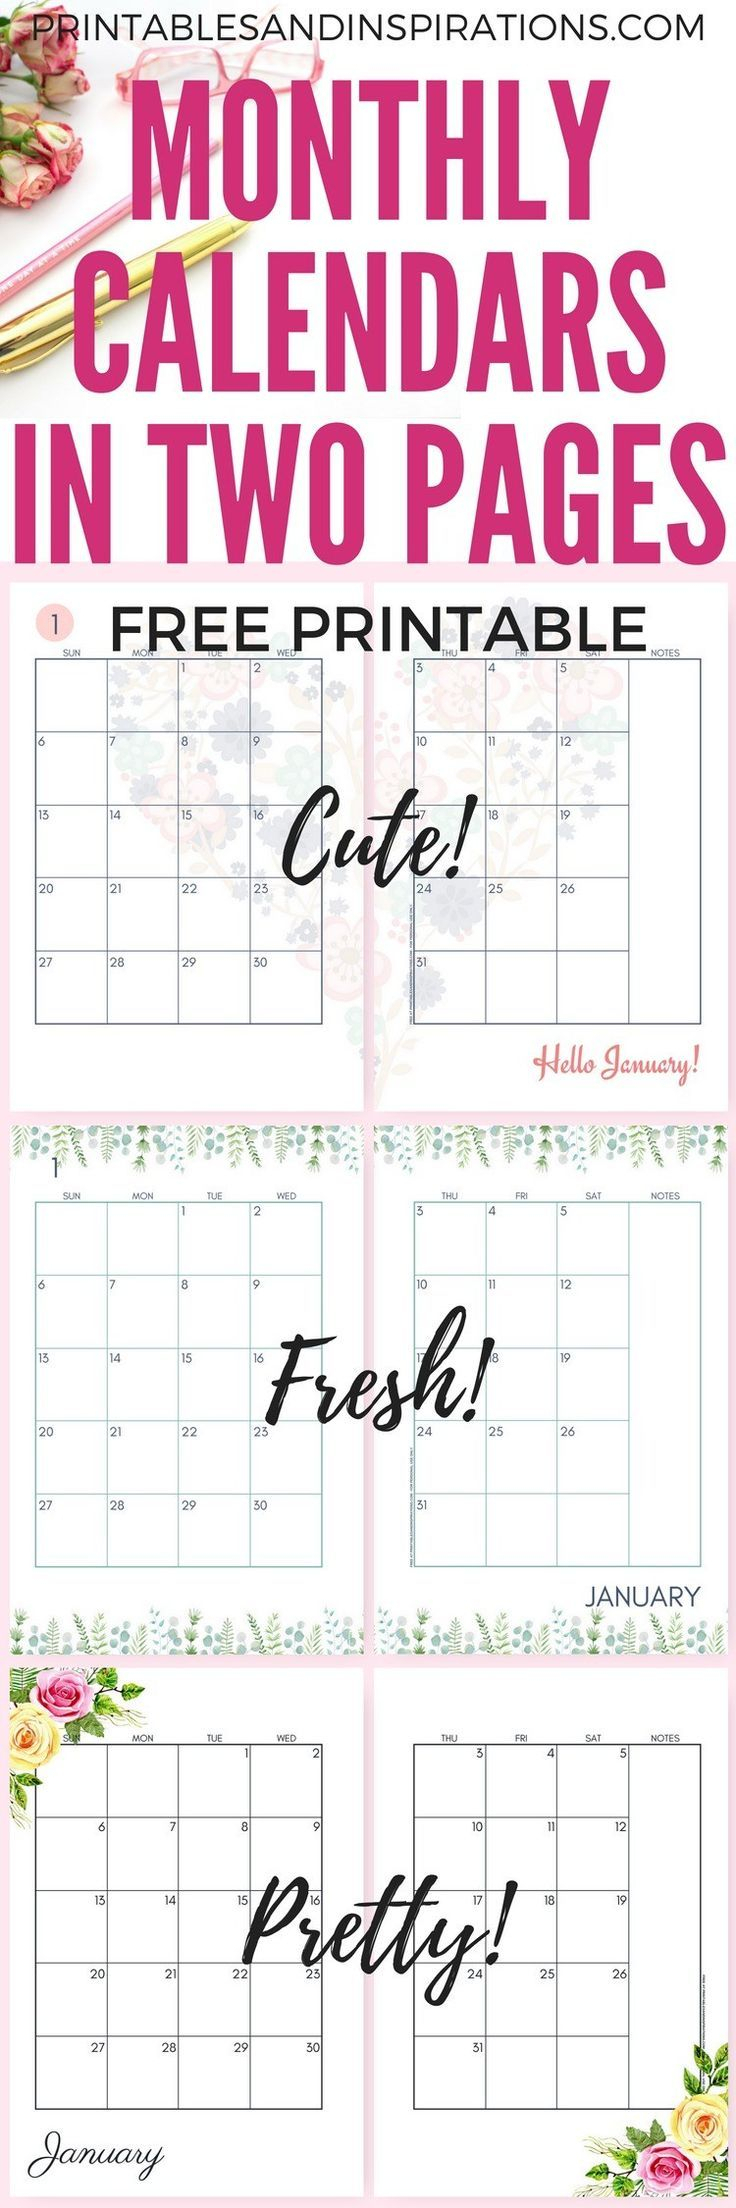 2019 Monthly Calendar Two Page Spread - Free Printable